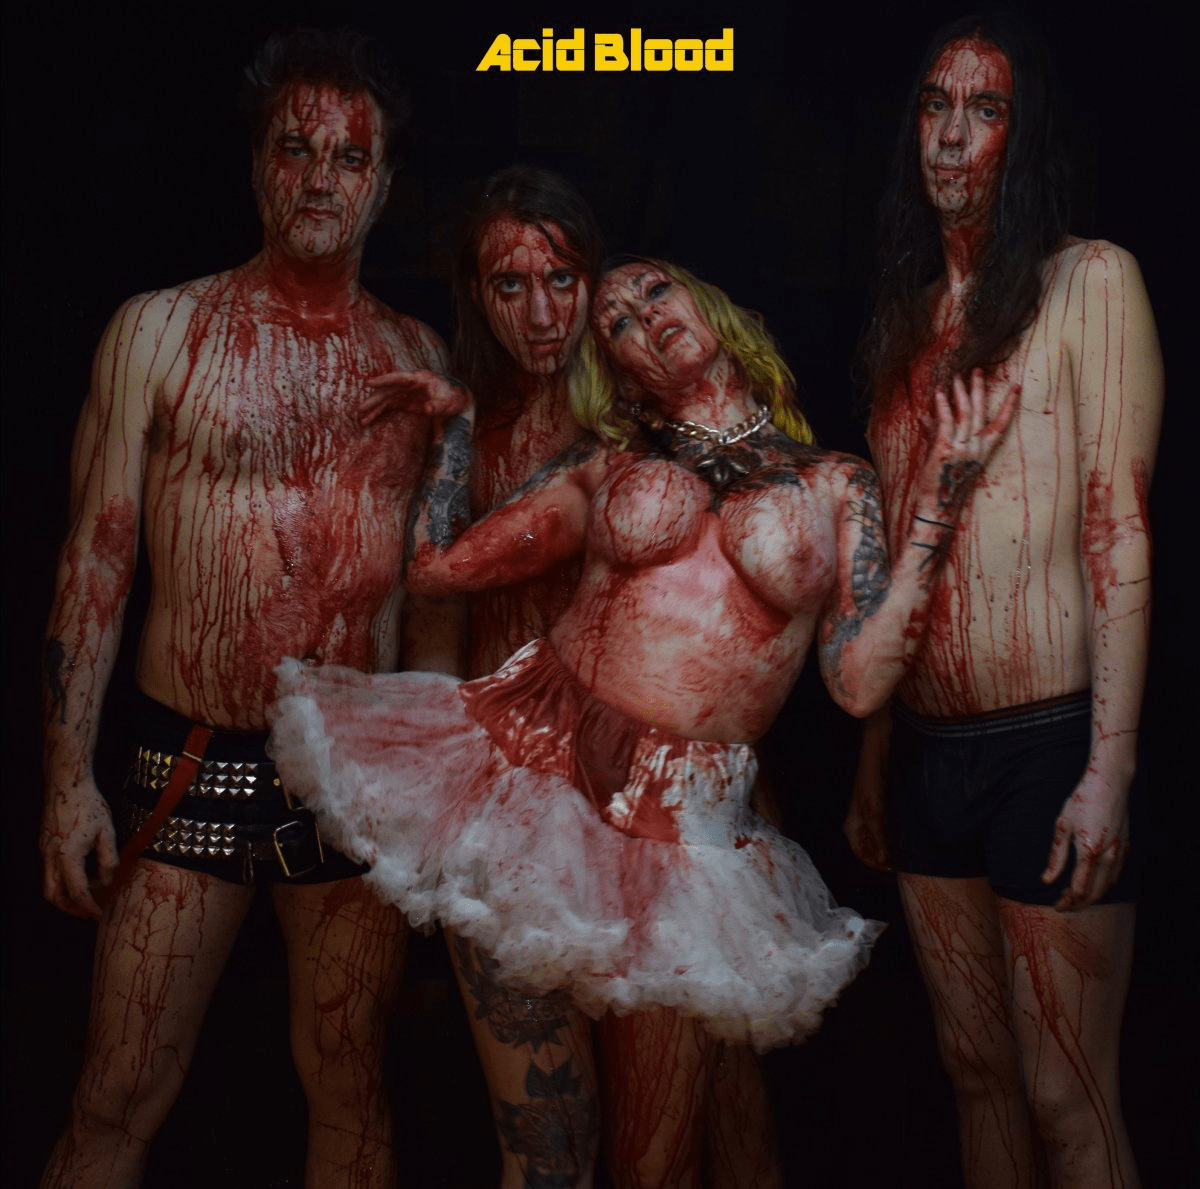 ACID BLOOD band-